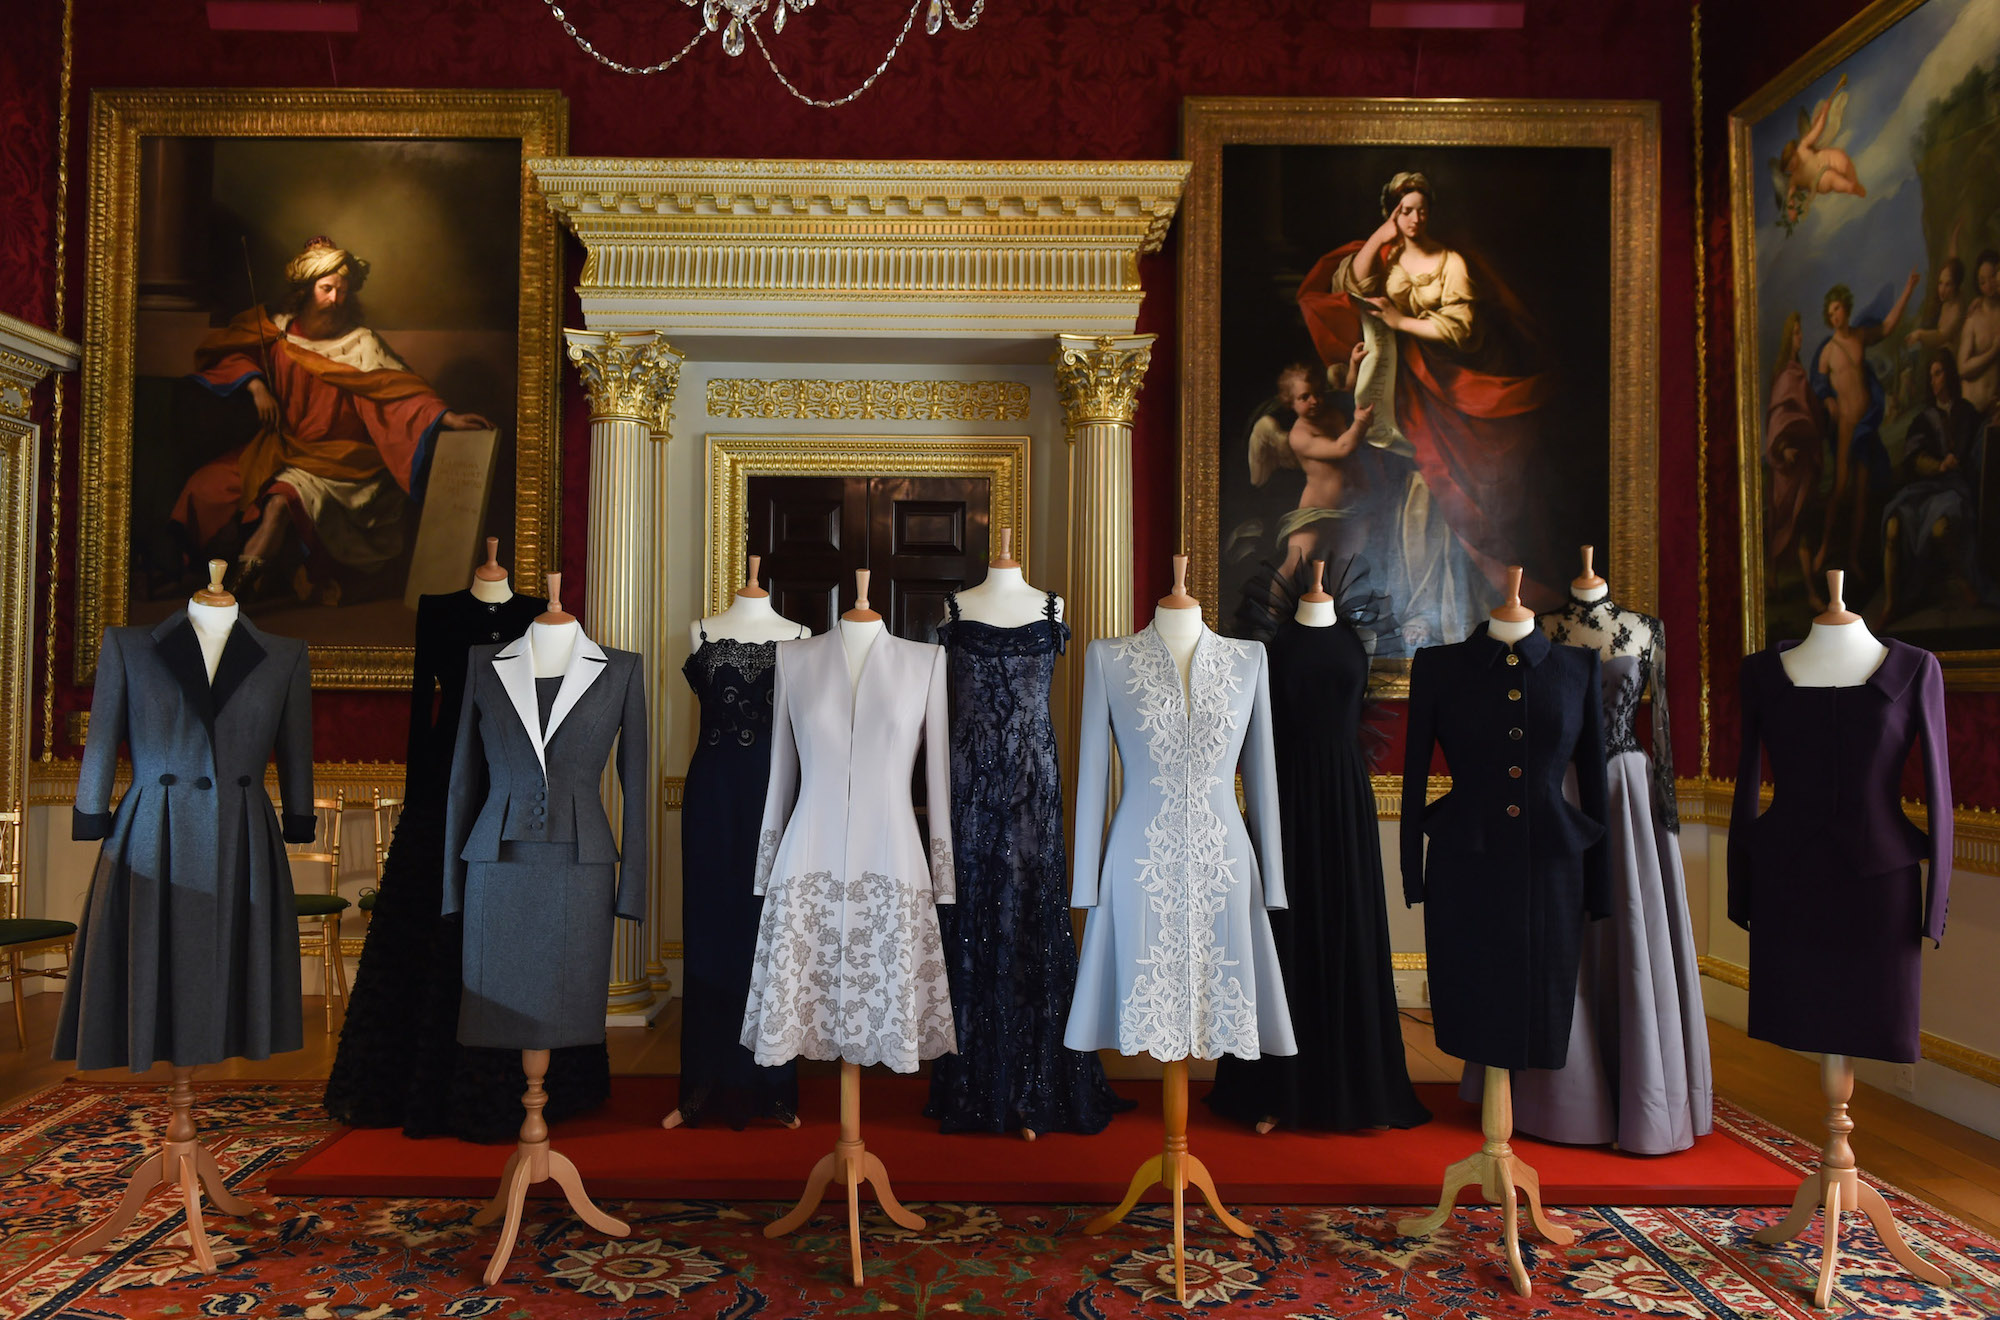 A selection of pieces from Catherine Walker and Co.'s Fall 2017 collection, from Catherine Walker and Co.'s 40th anniversary exhibition at Spencer House